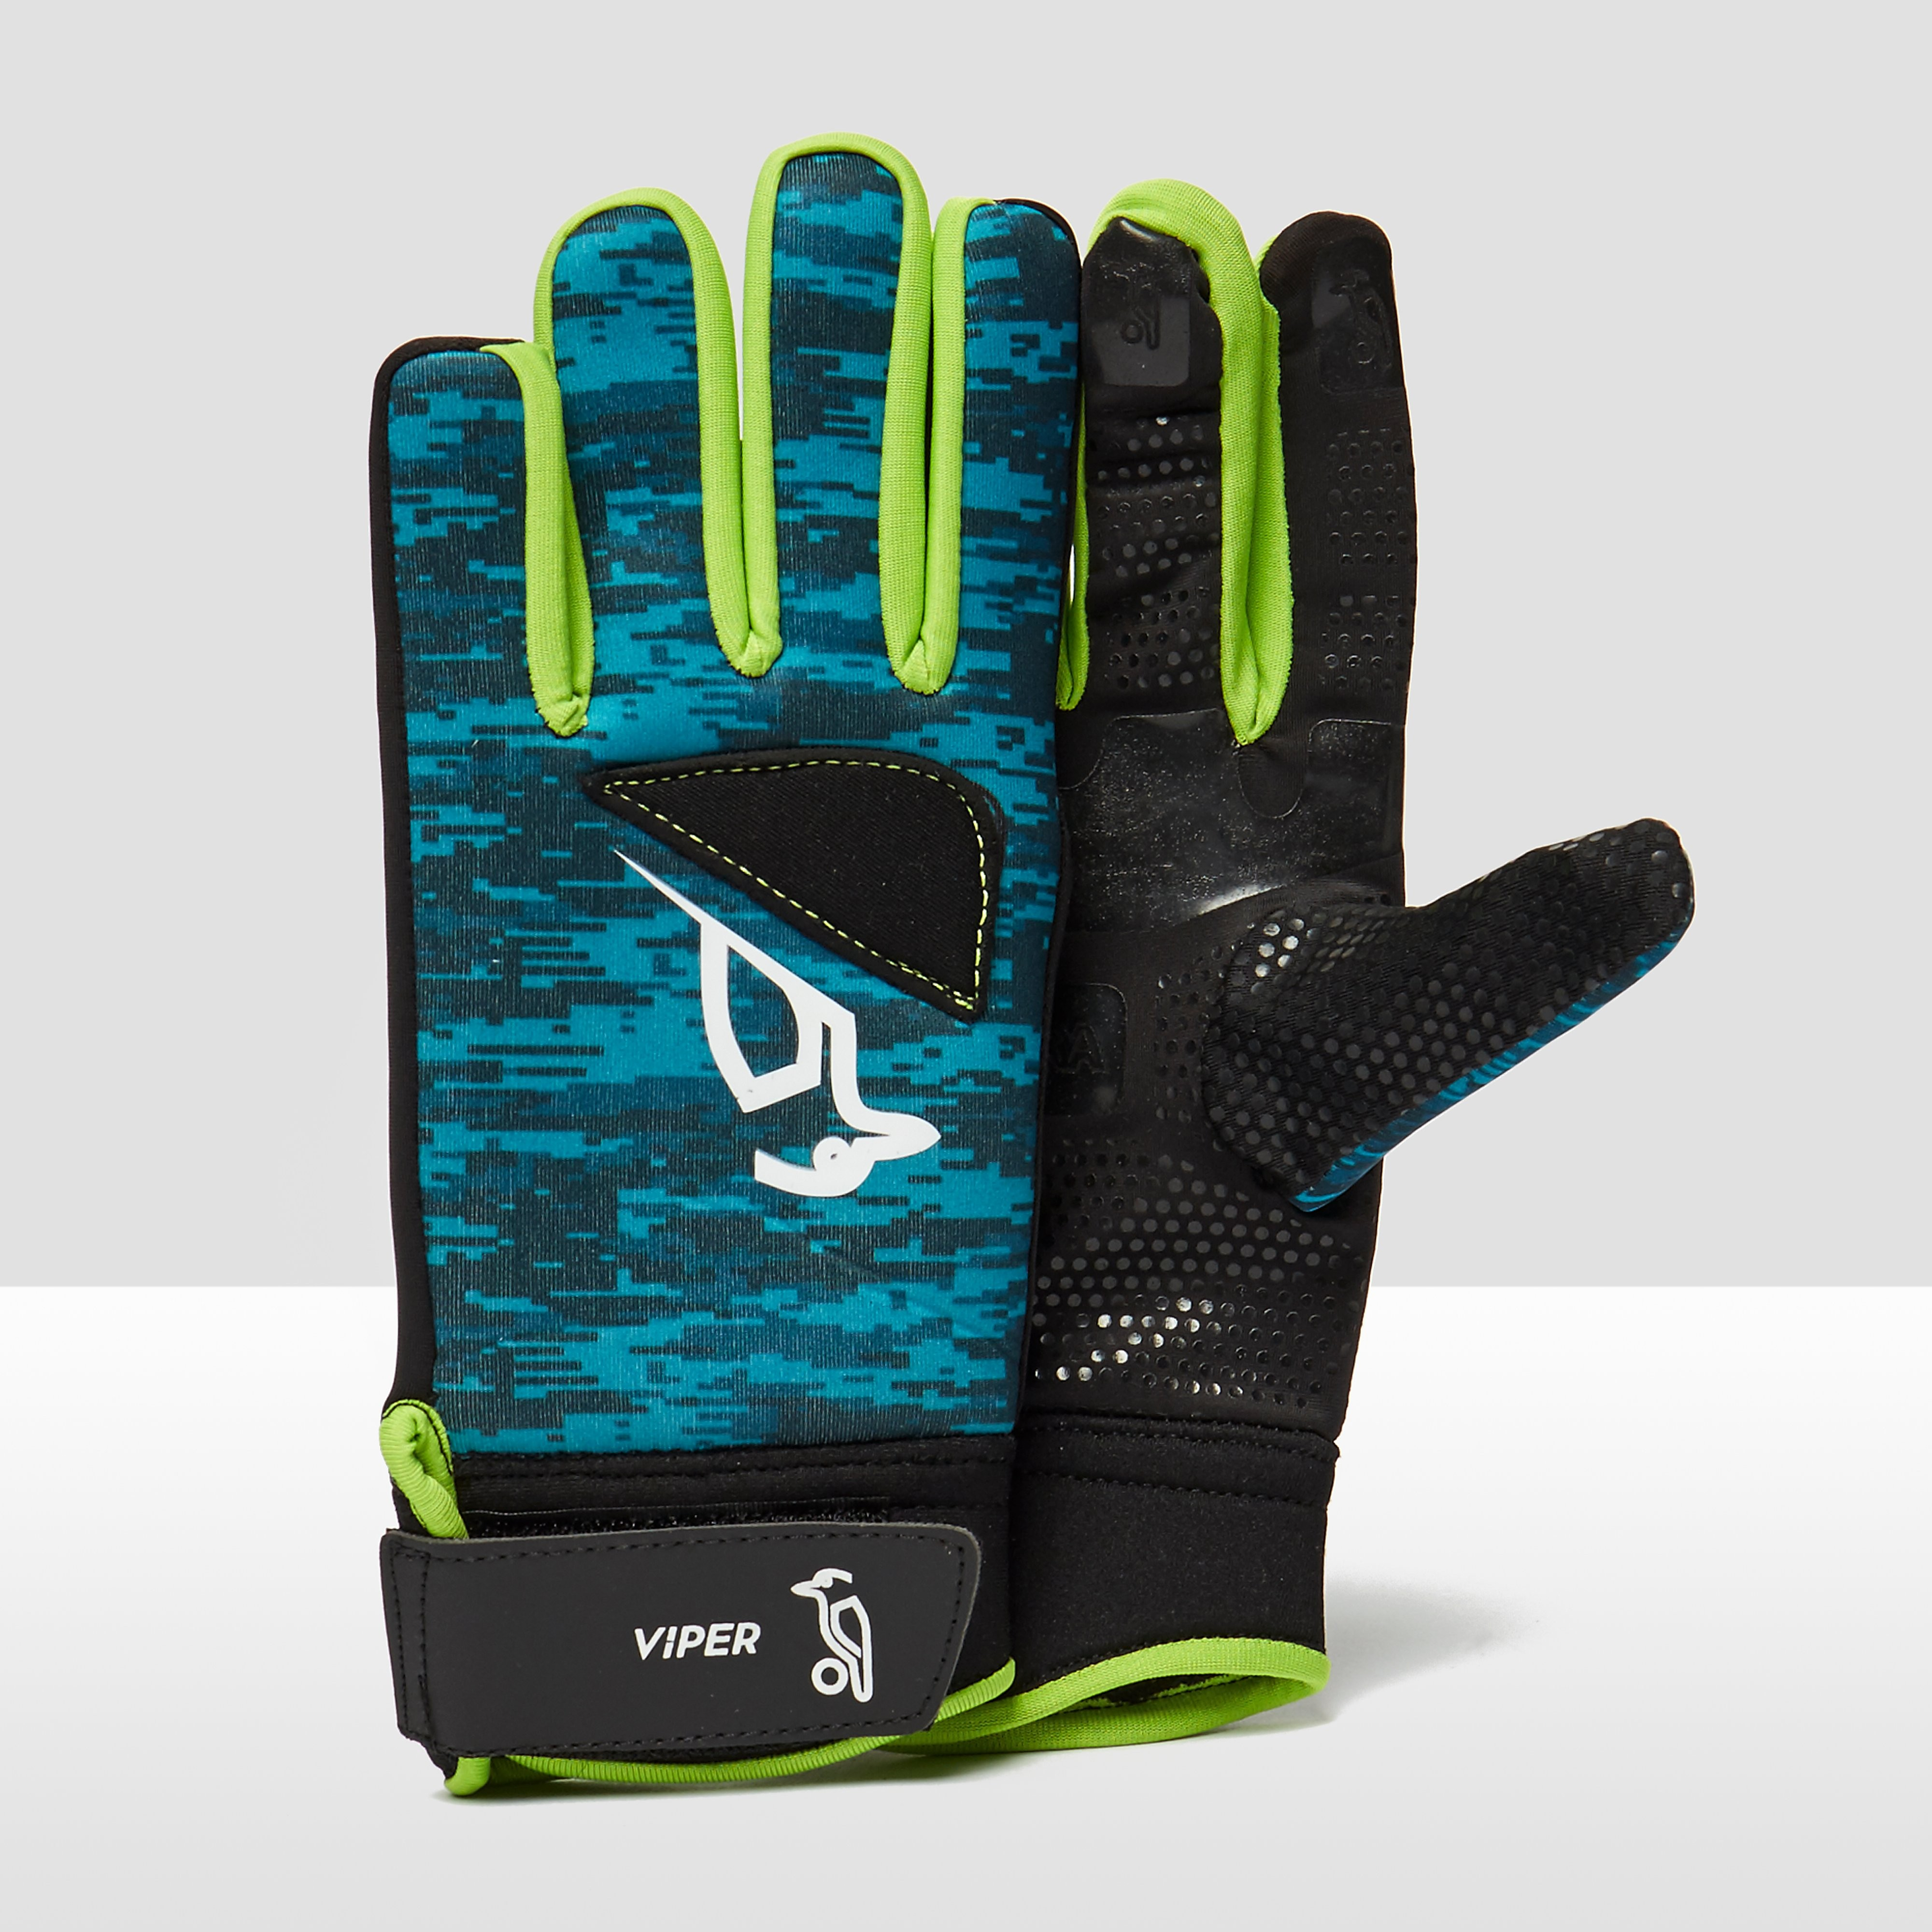 Kookaburra Viper Hand Guard Gloves